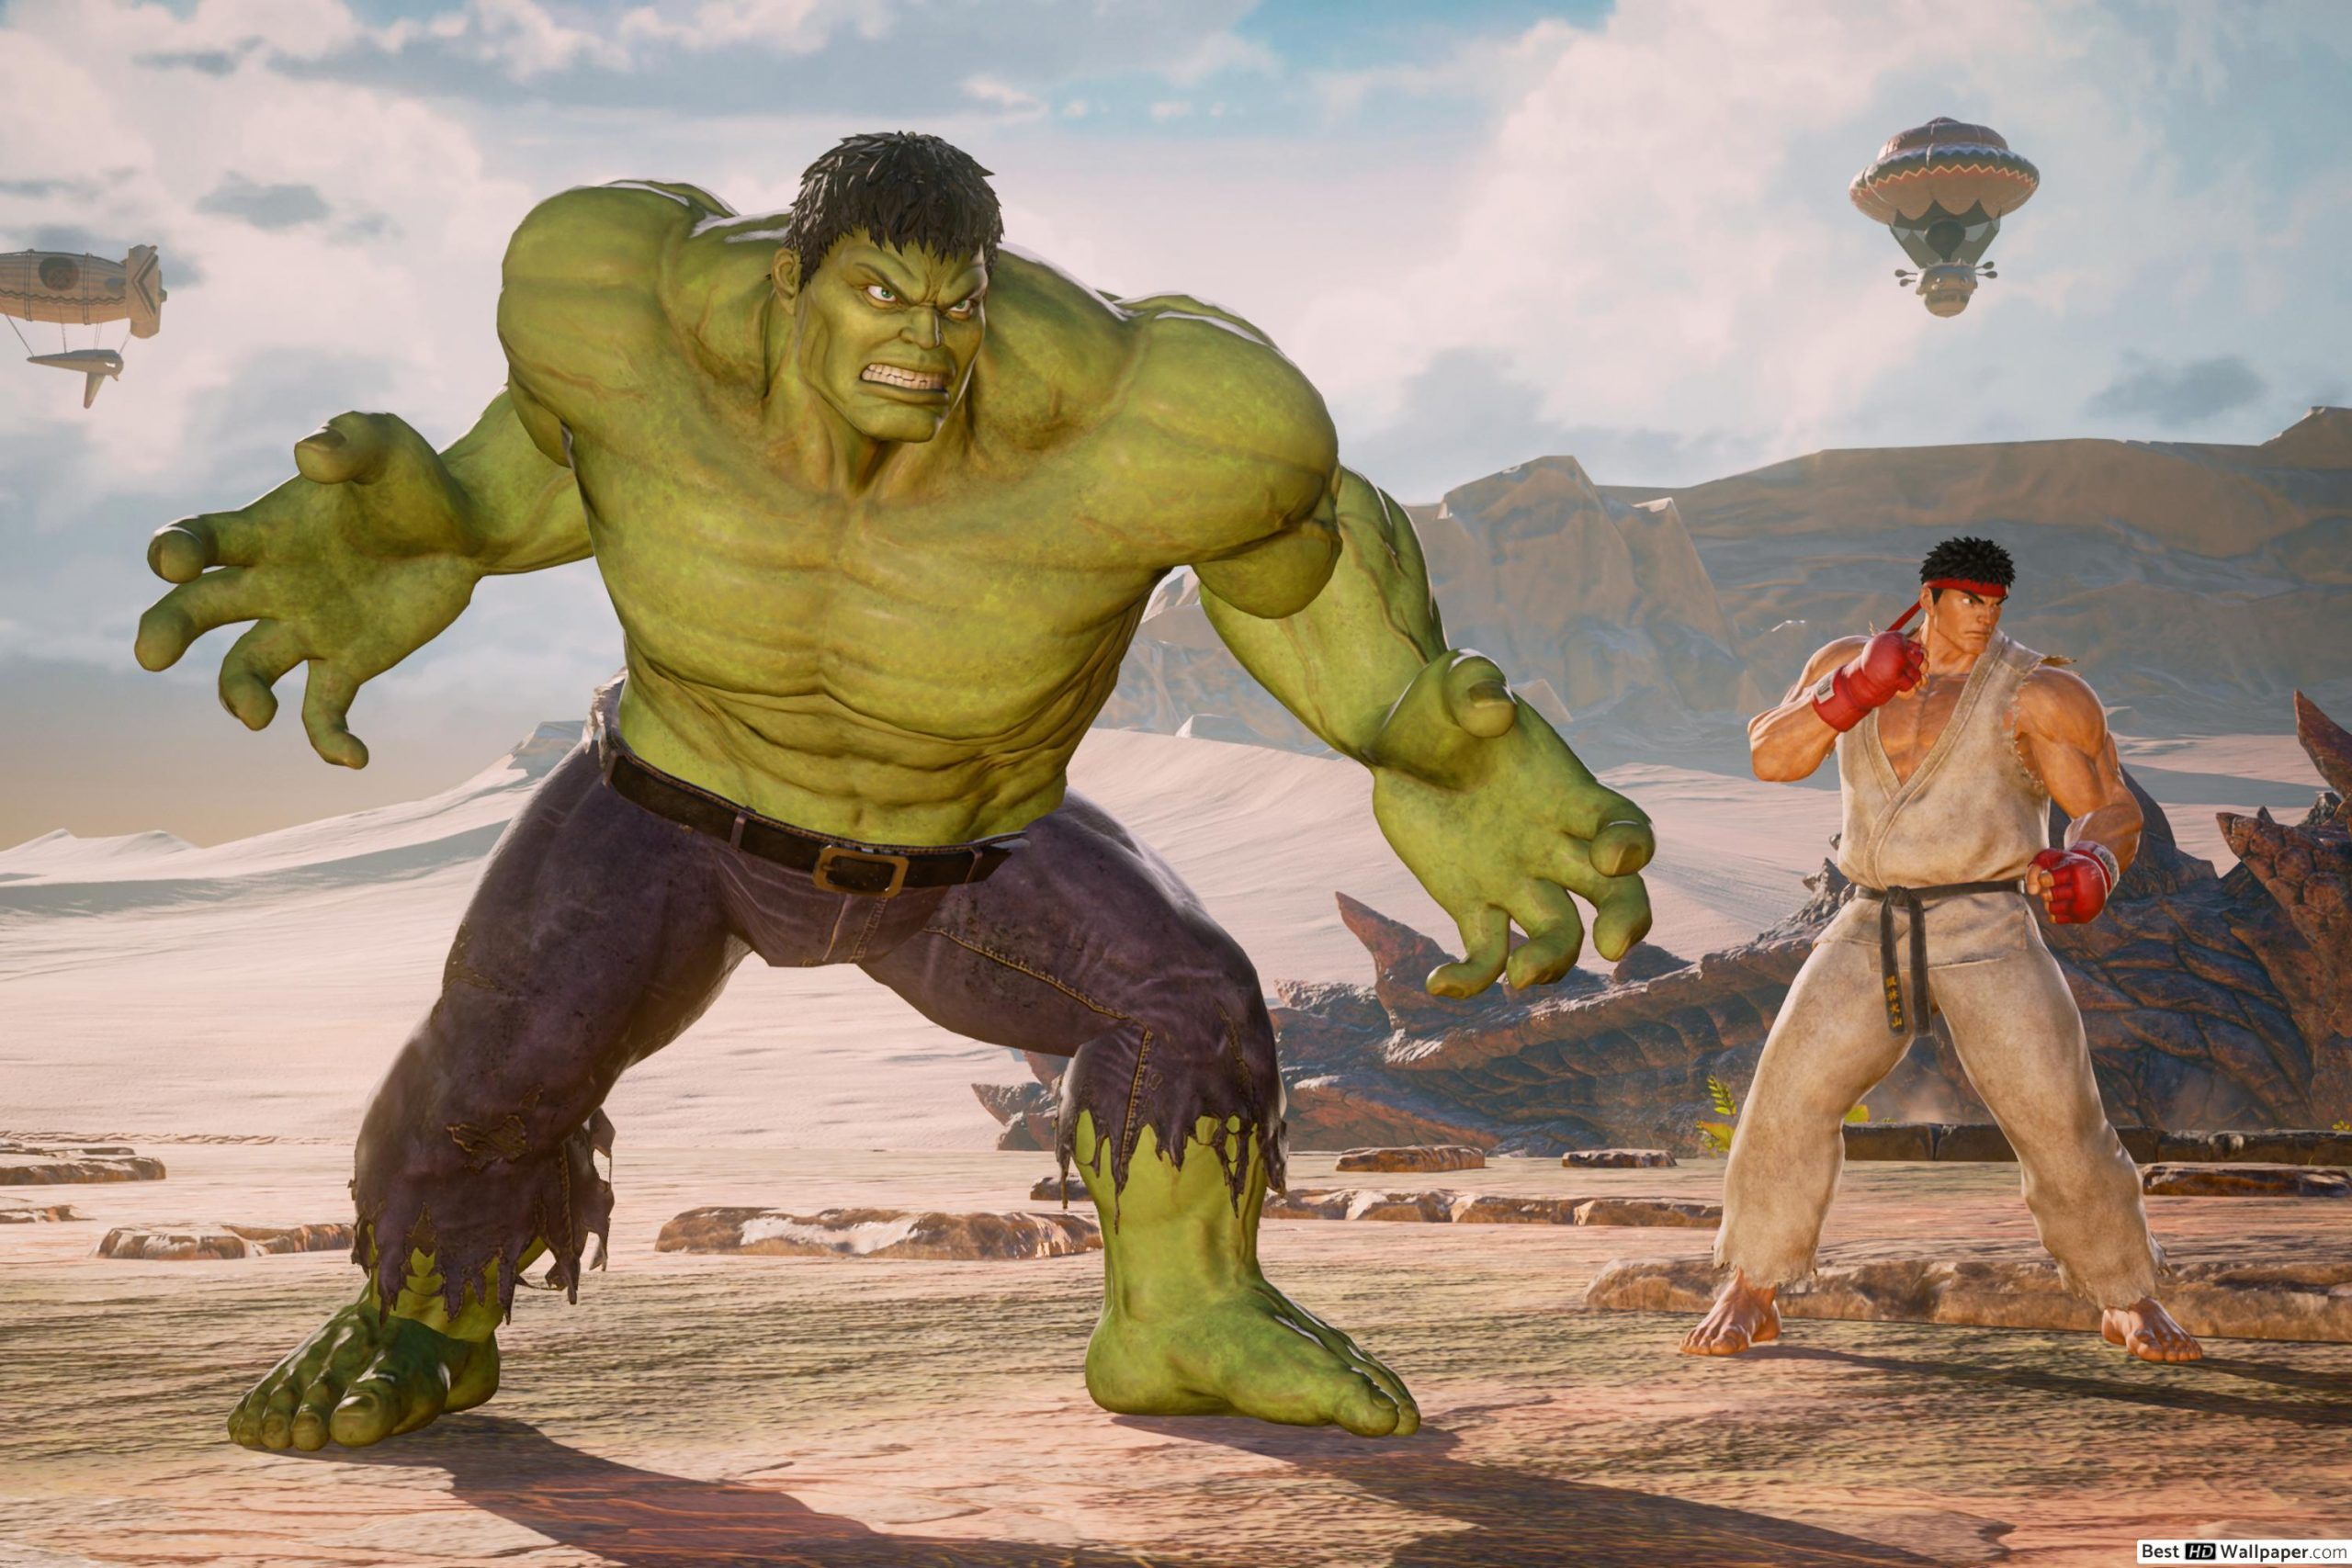 marvel vs cap infinite hulk and ryu dt en US